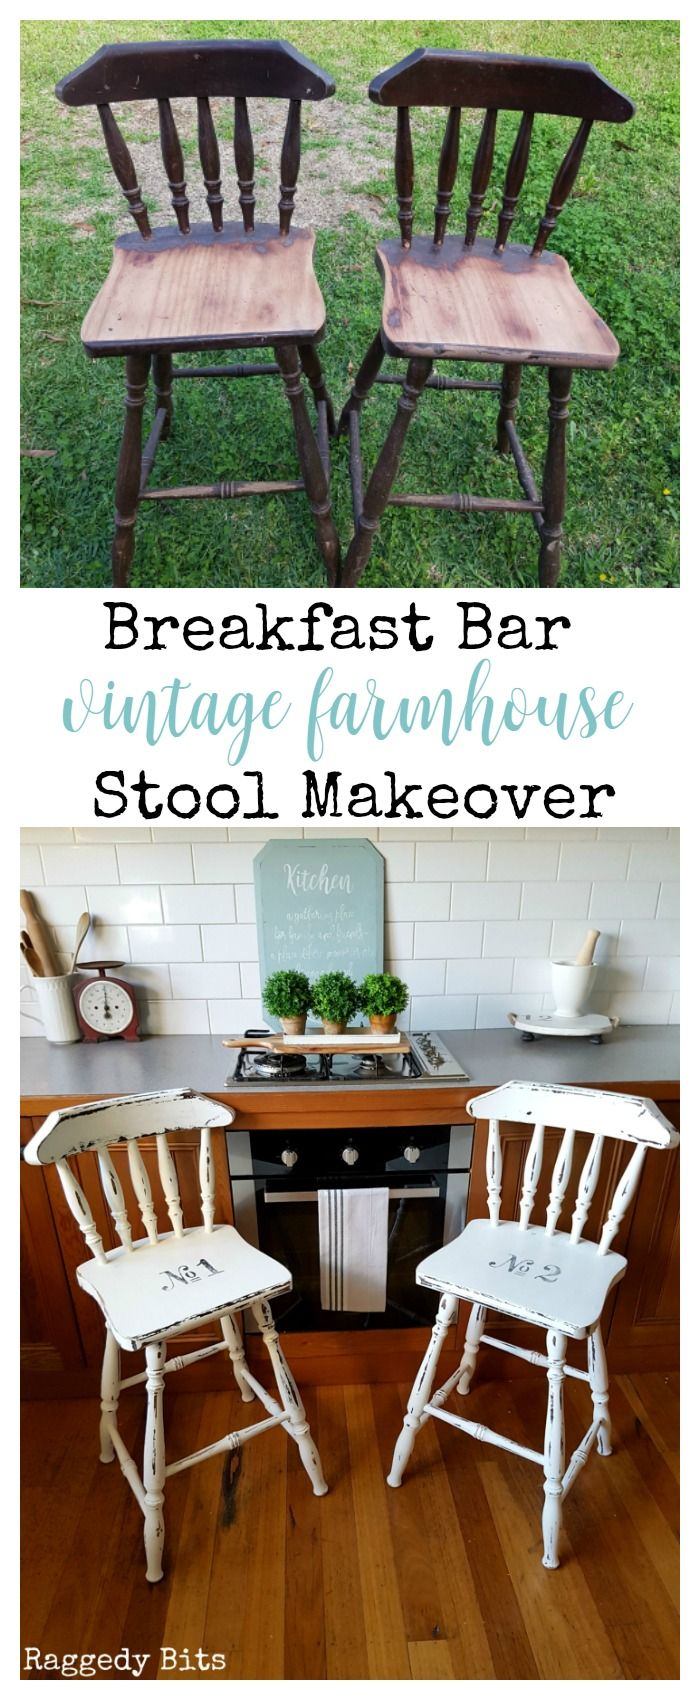 Some road side stools get a much needed makeover with some Picket Fence Fusion Mineral Paint | Breakfast Bar Vintage Farmhouse Stool Makeover | www.raggedy-bits.com